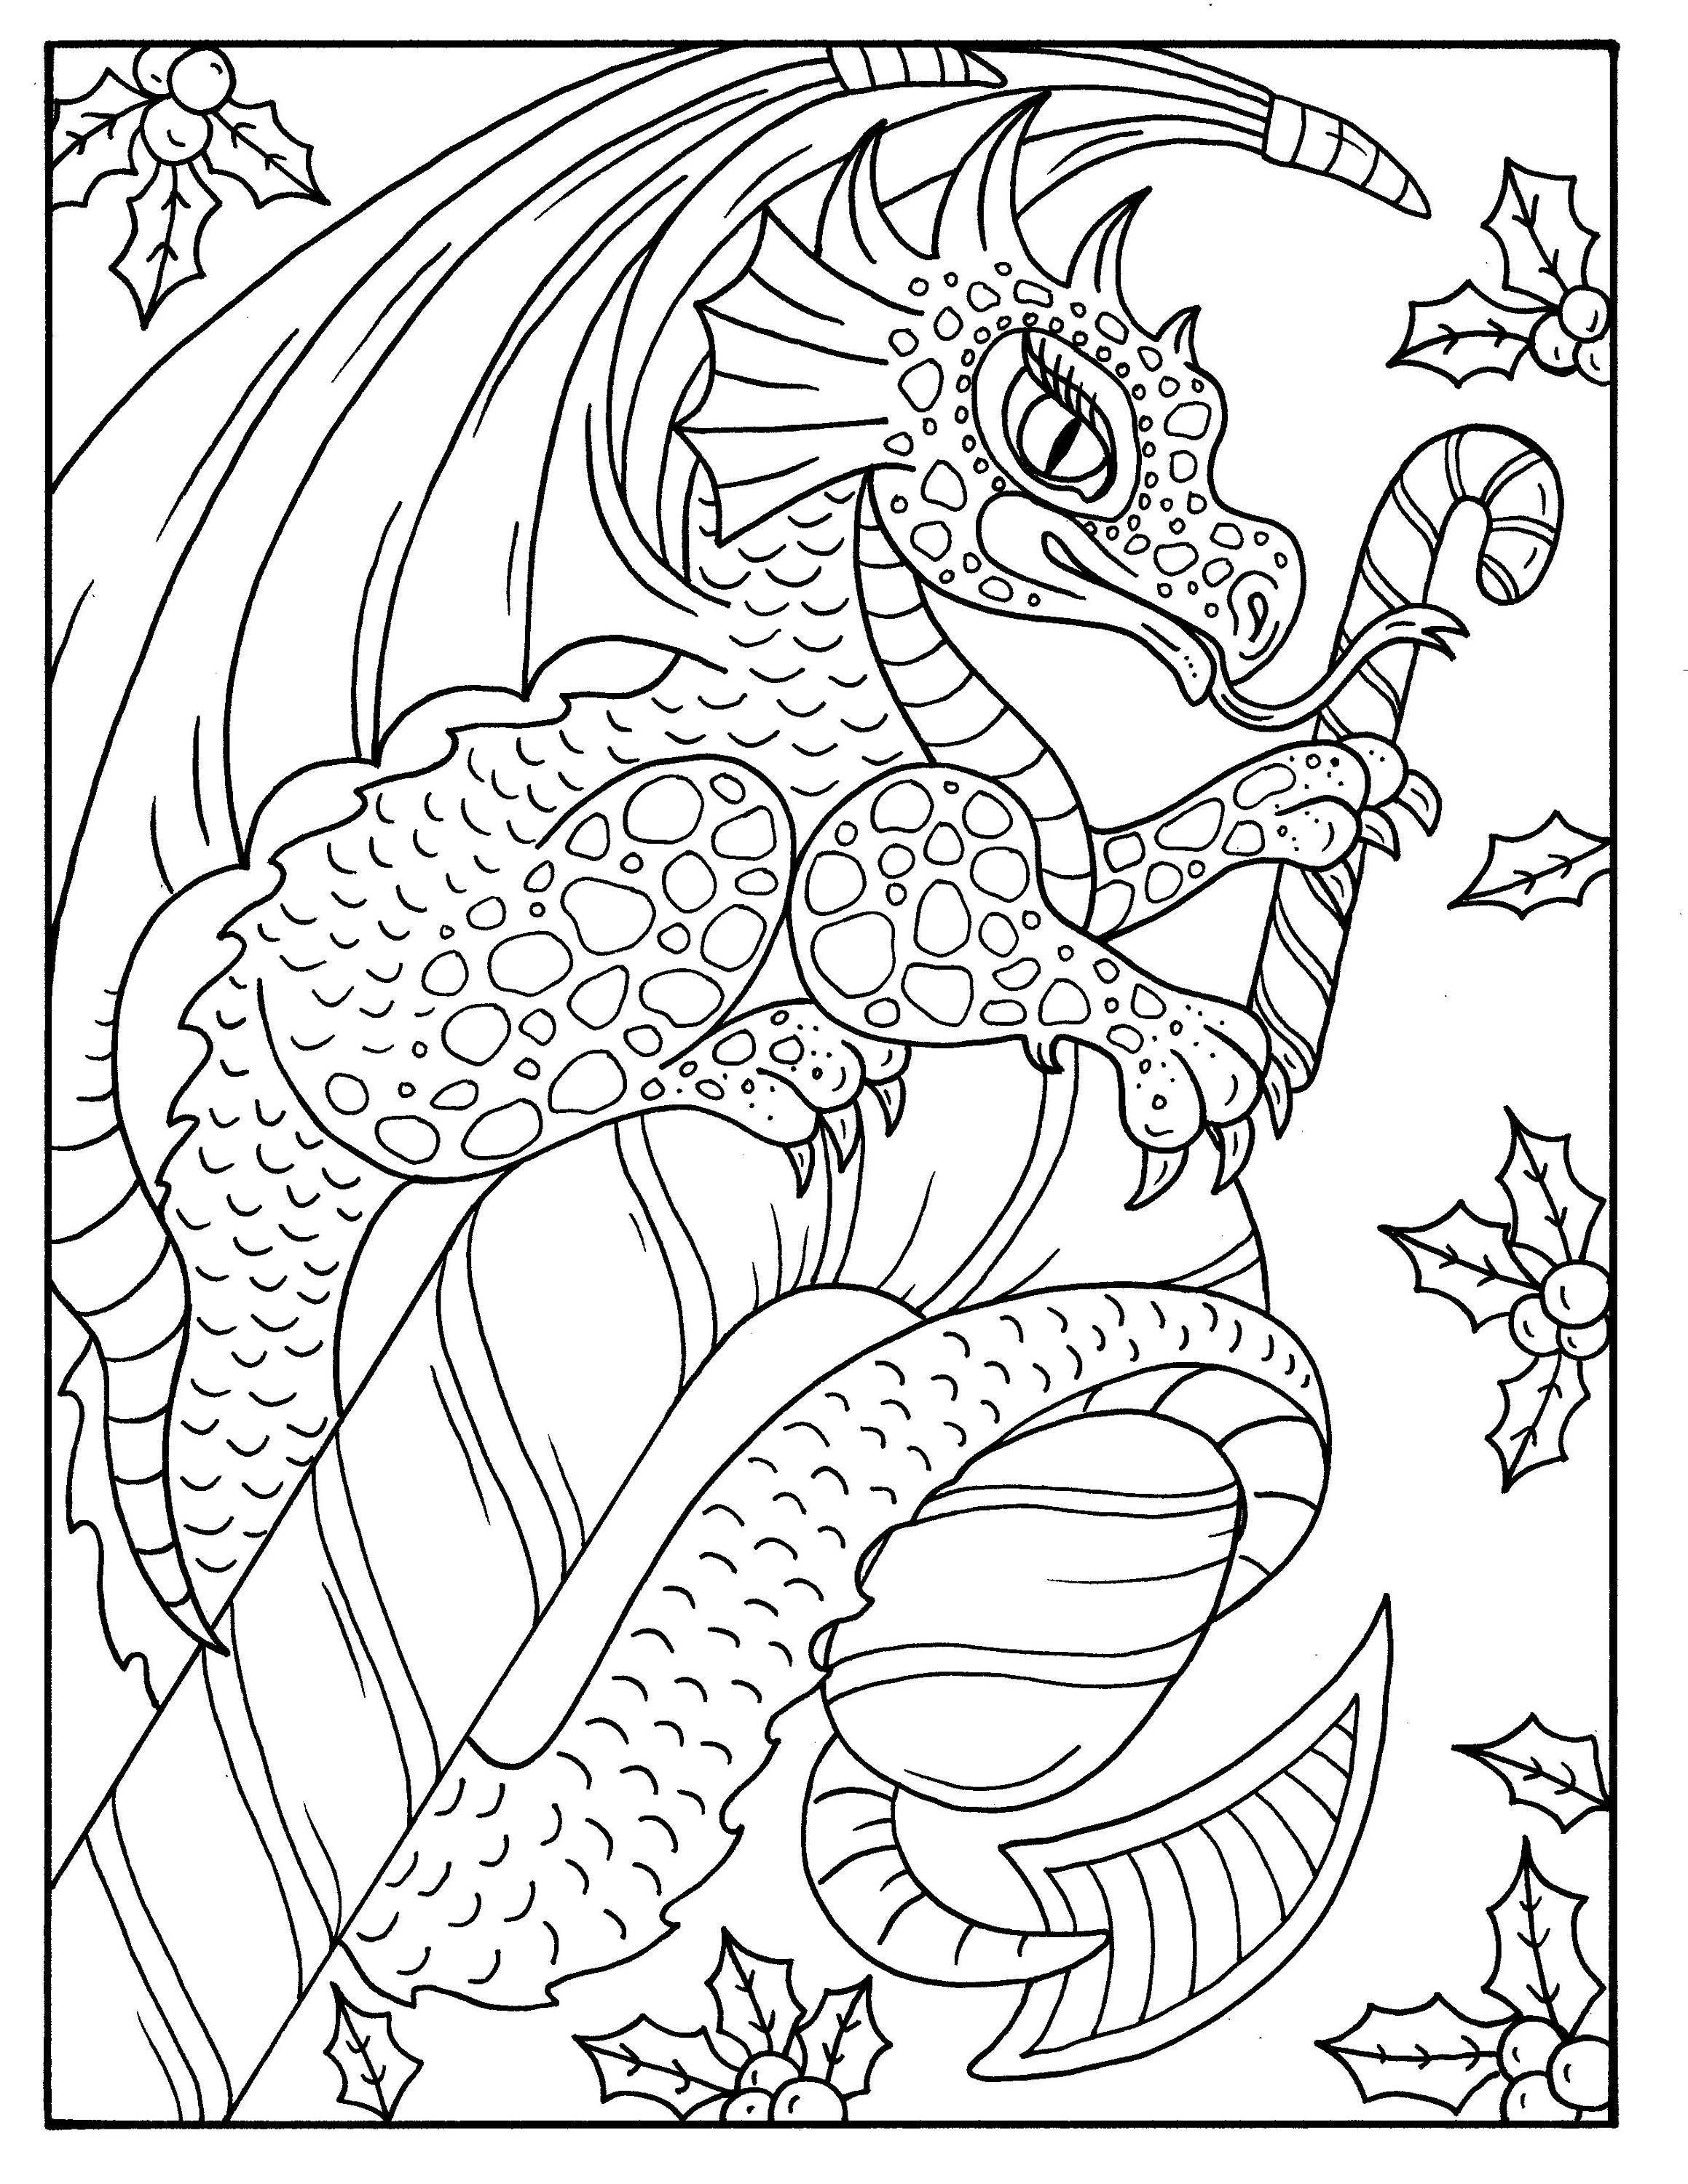 Christmas Magic Digital Coloring Book Pages Fantasy Art Adult